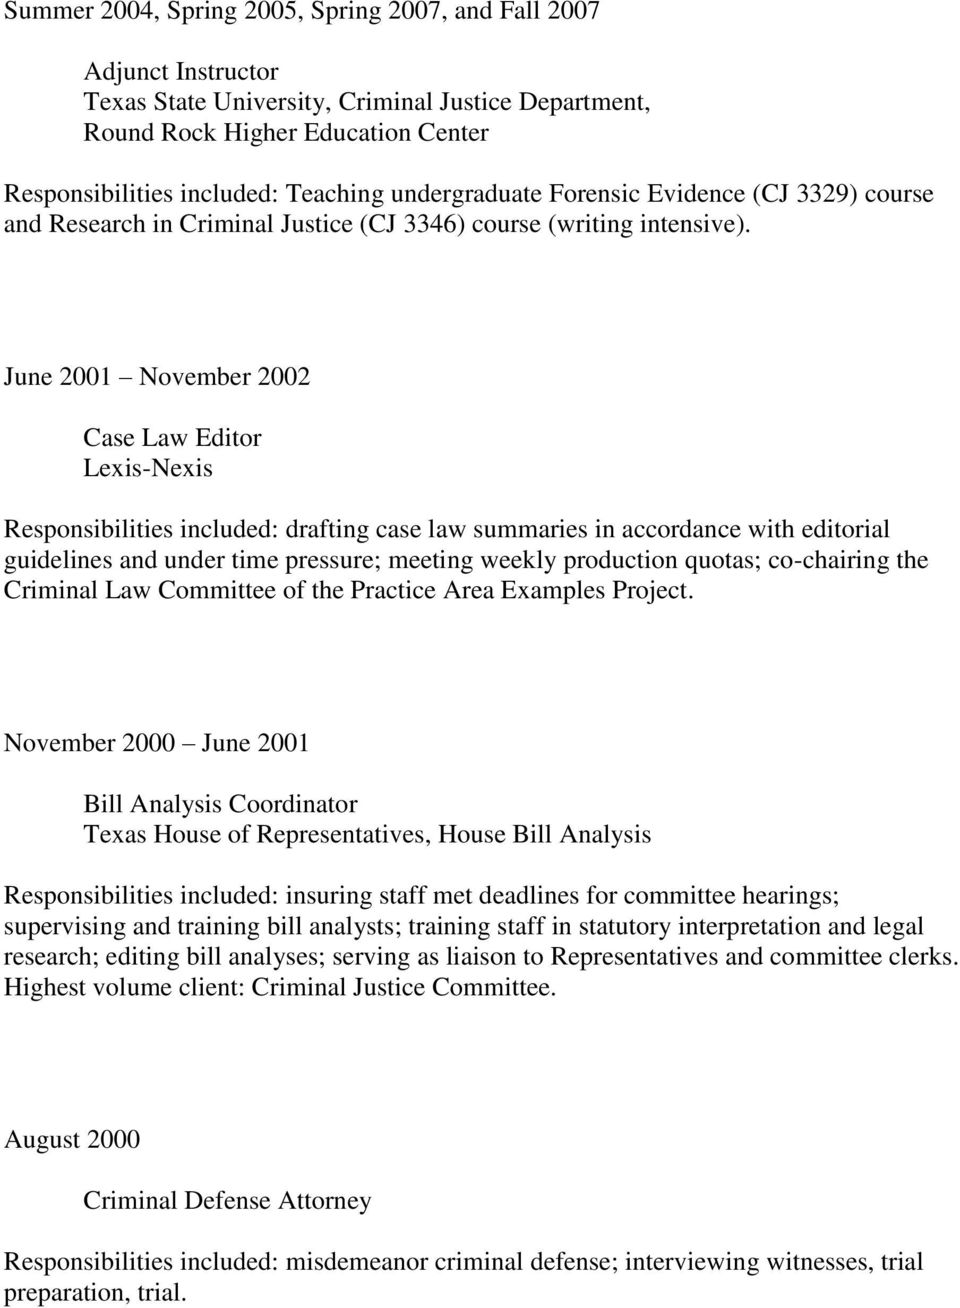 June 2001 November 2002 Case Law Editor Lexis-Nexis Responsibilities included: drafting case law summaries in accordance with editorial guidelines and under time pressure; meeting weekly production